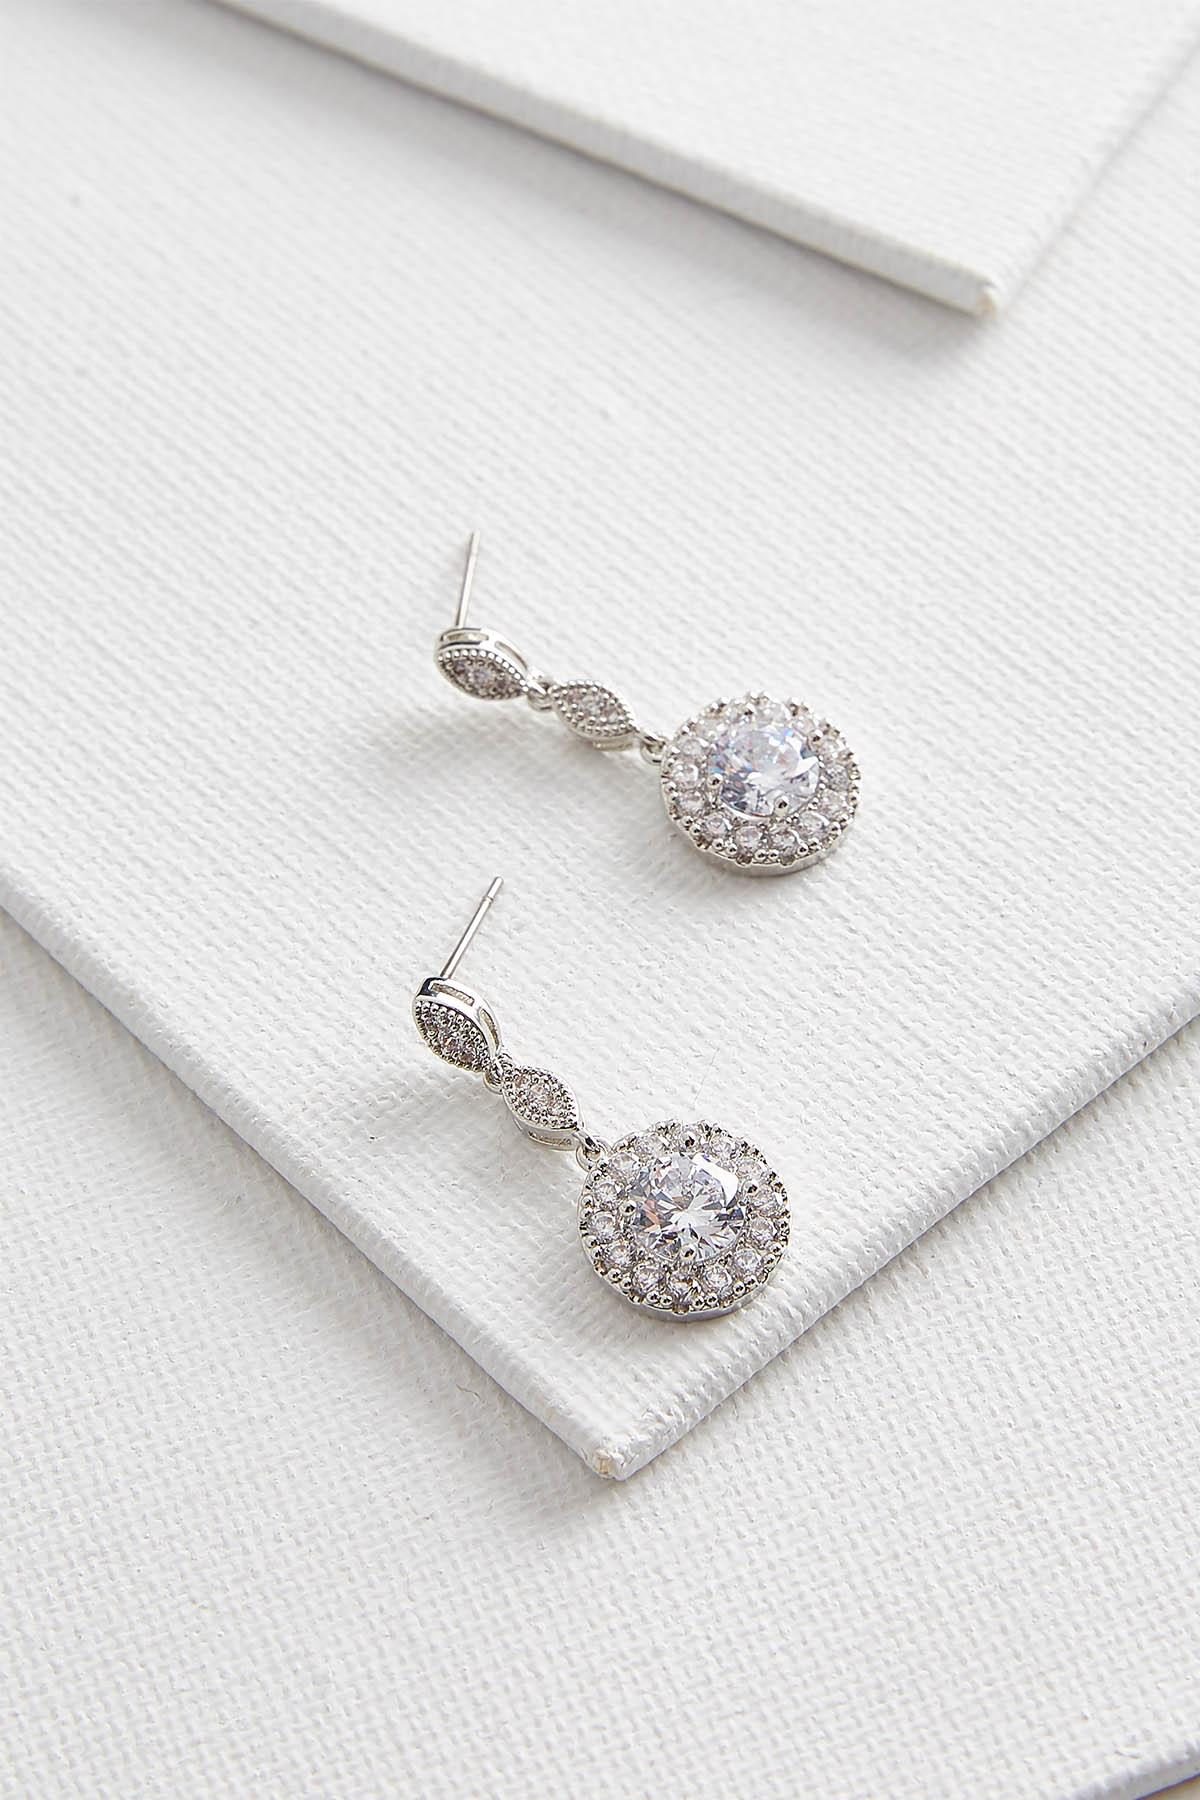 Delicate Rhinestone Earrings